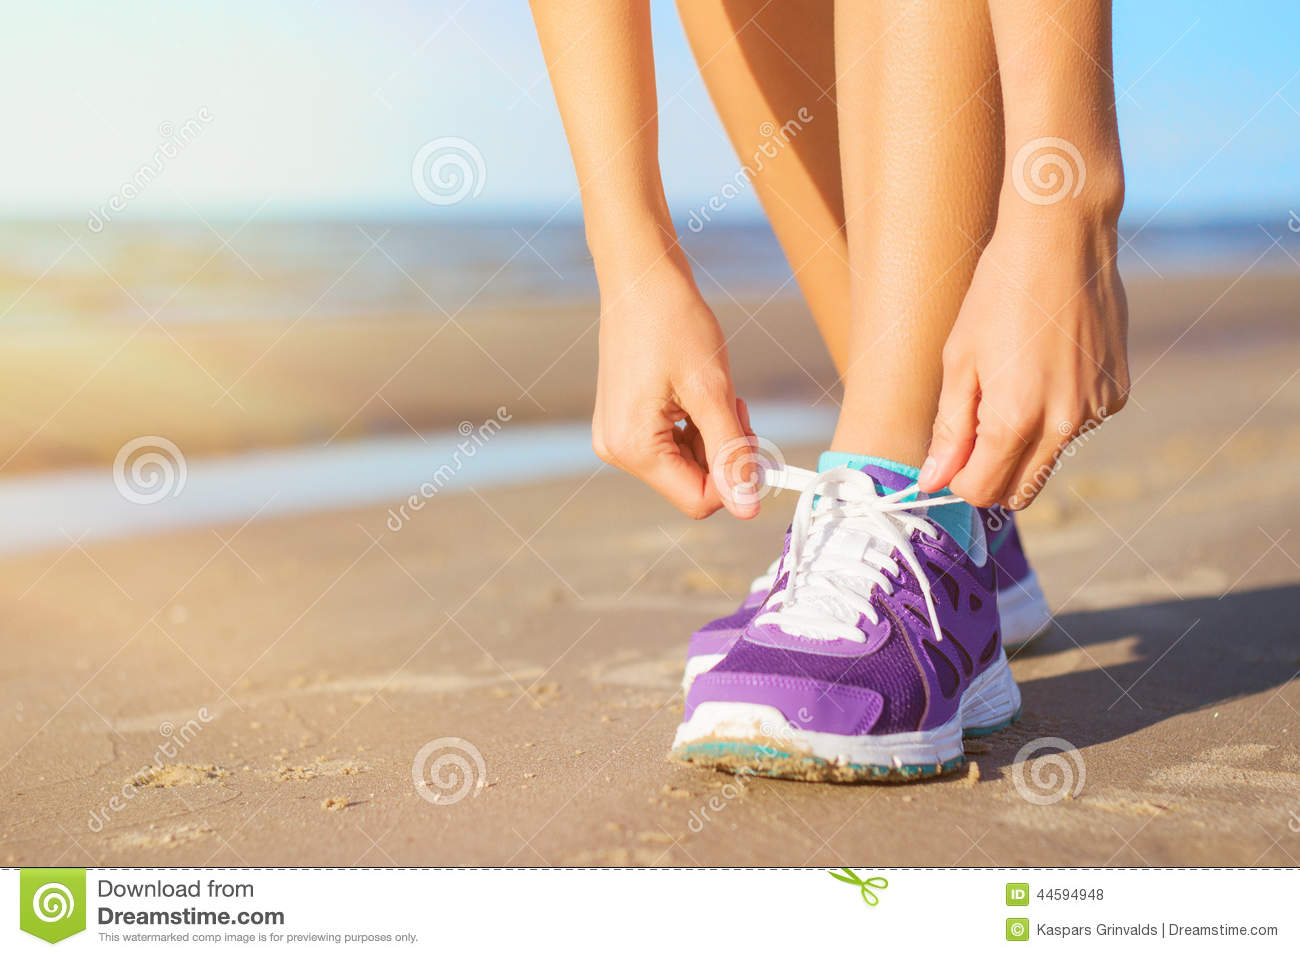 Woman Wearing Running Shoes Stock Photo - Image of people 5bd548017